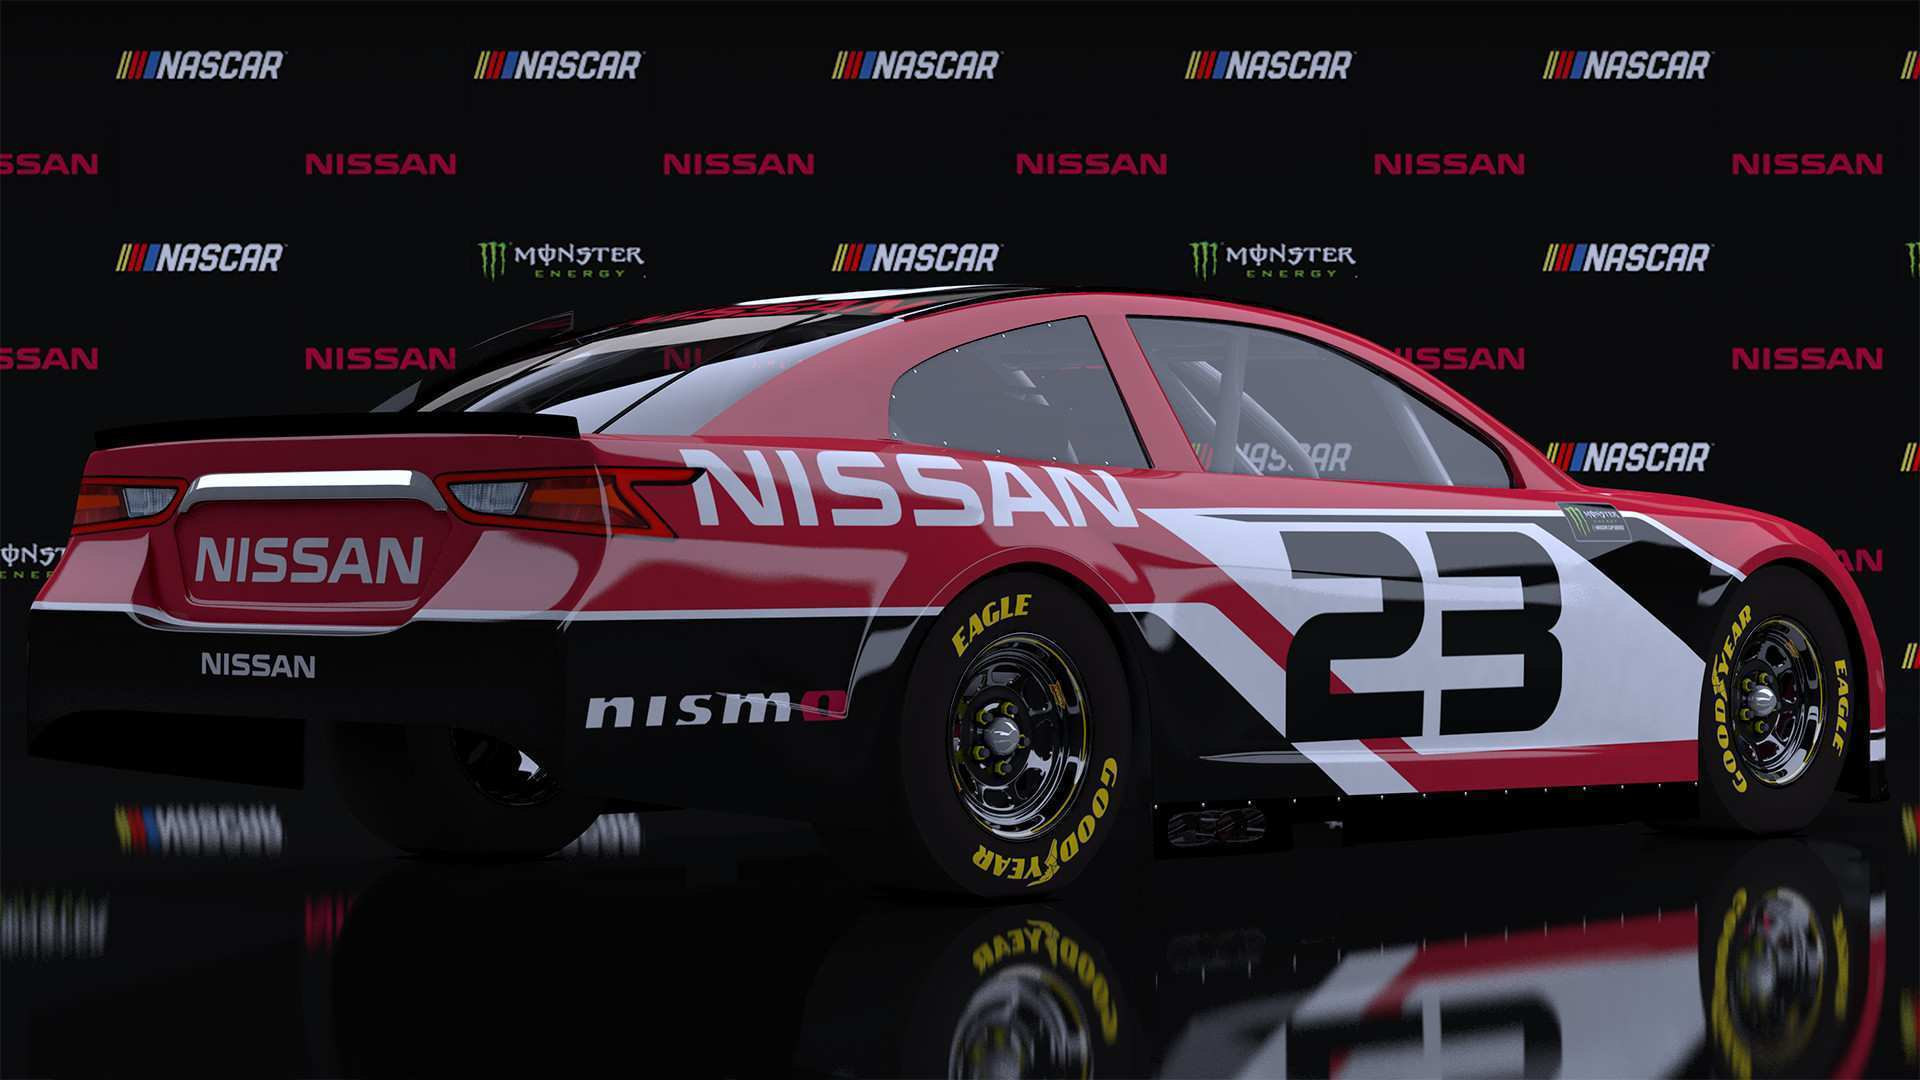 63 Best Nissan Nascar 2020 Reviews